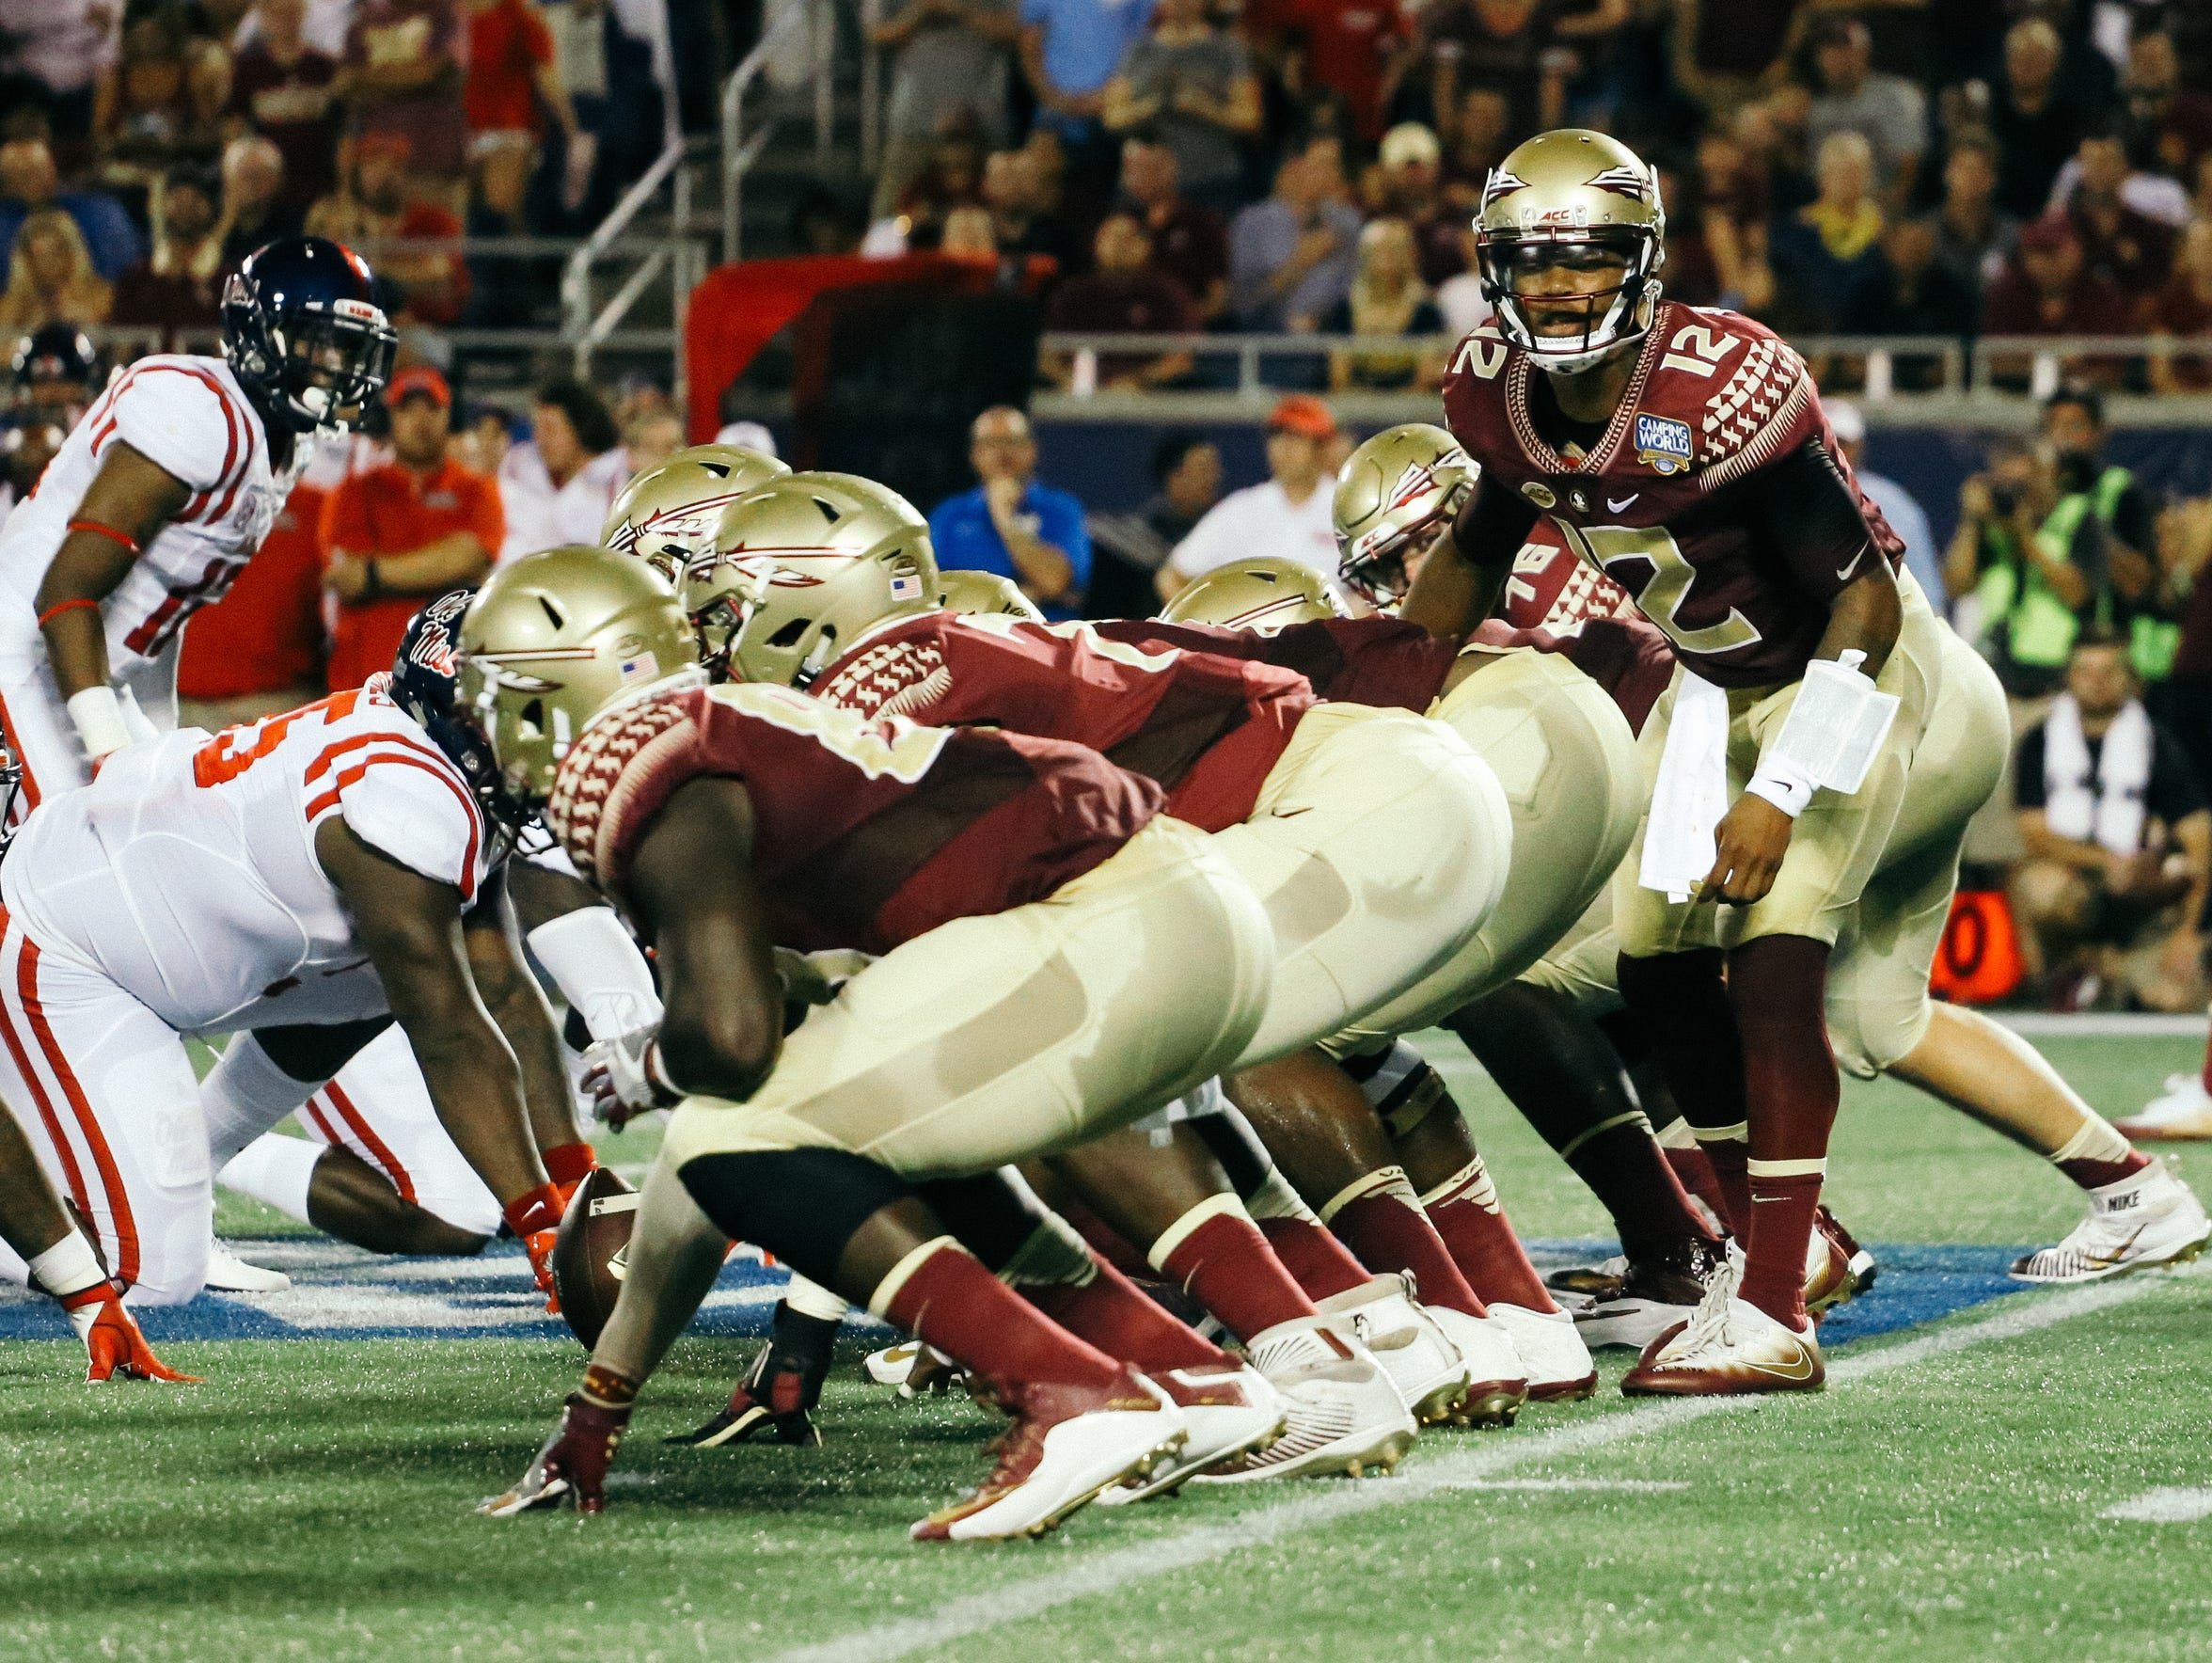 Deondre Francois (12) looks to the sidelines in his